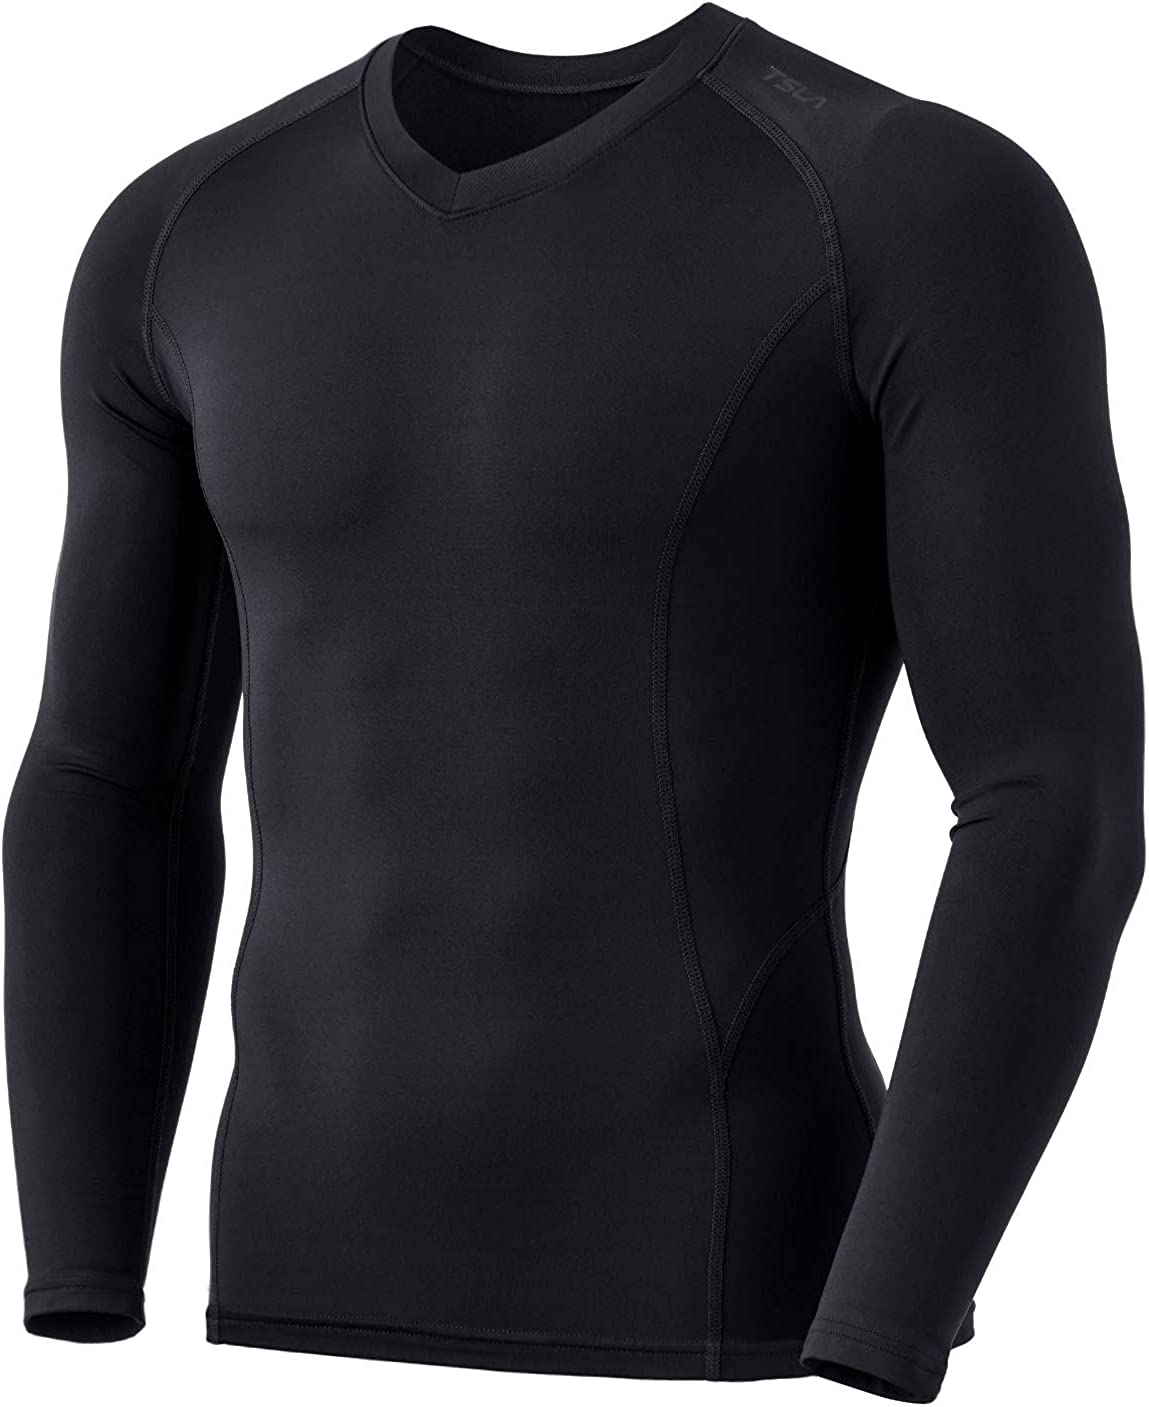 TSLA Mens Thermal Wintergear Compression Baselayer Vneck Long Sleeve Shirt